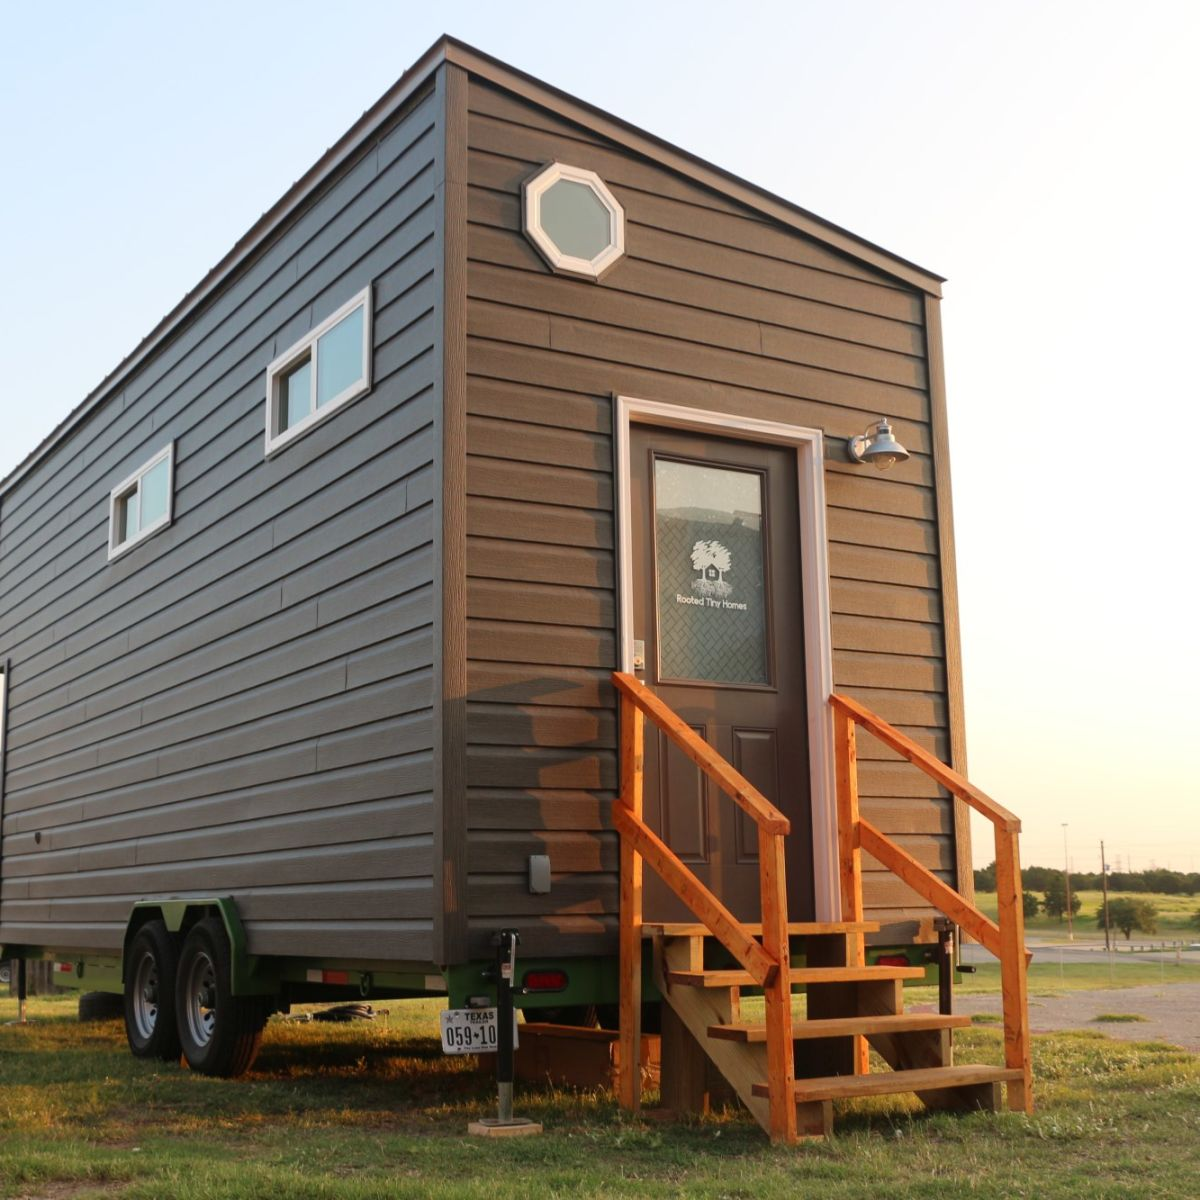 Tiny Houses For Sale In Houston - Tiny Houses For Sale, Rent and